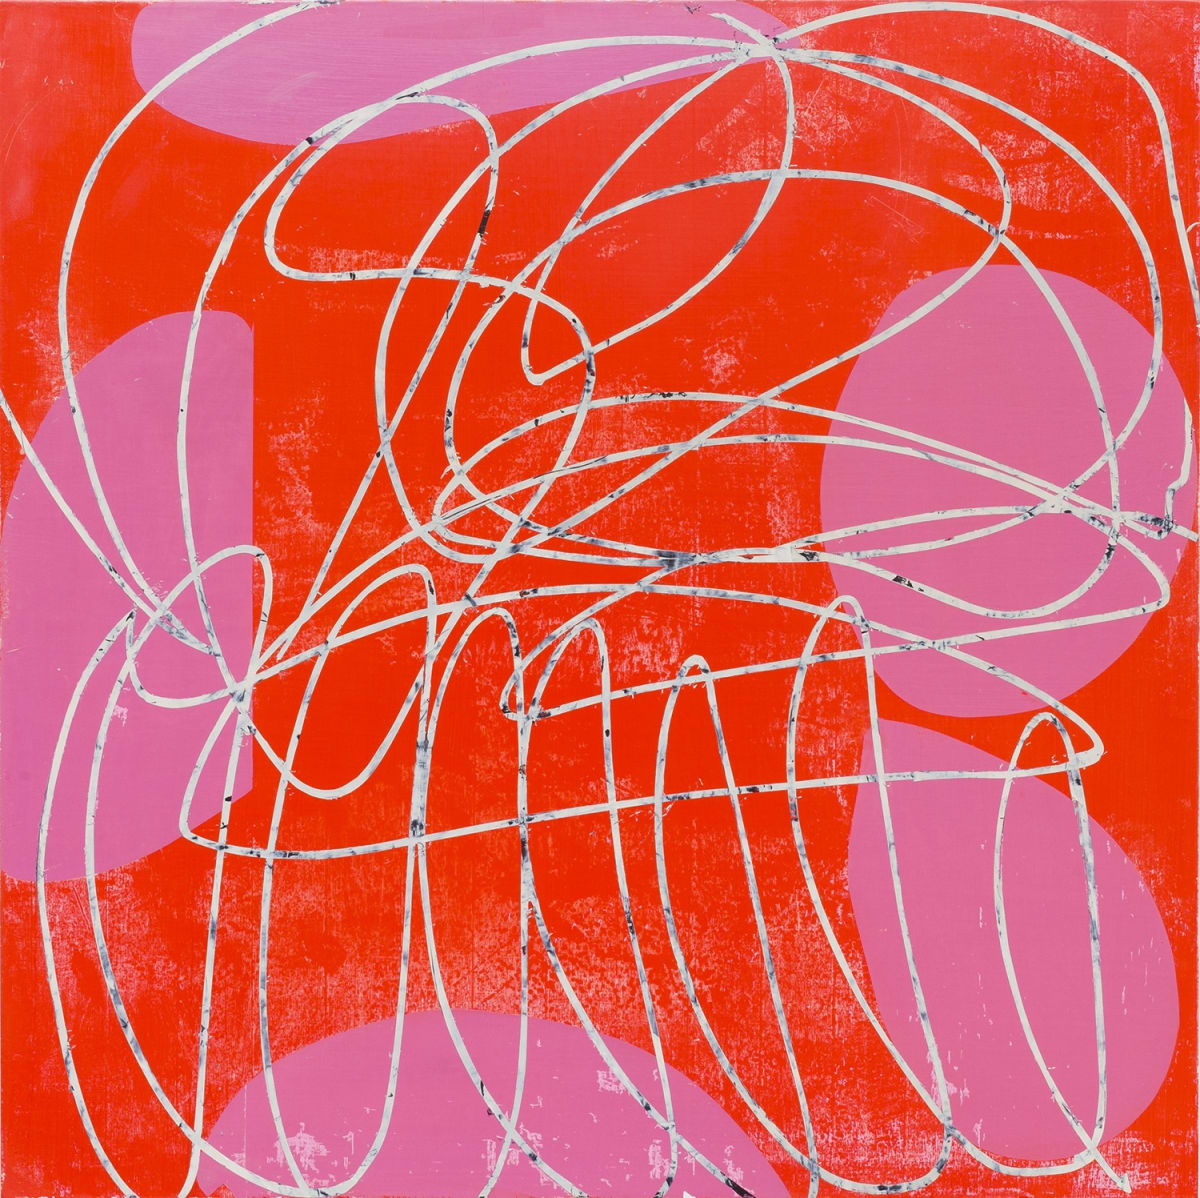 "Mary Didoardo's ""Speak to Me"" oil painting on wood in shades of red, white and pink. The painting is of white lines interlining with each other creating an overlapping movement in the foreground. The background is red with pink shapes."